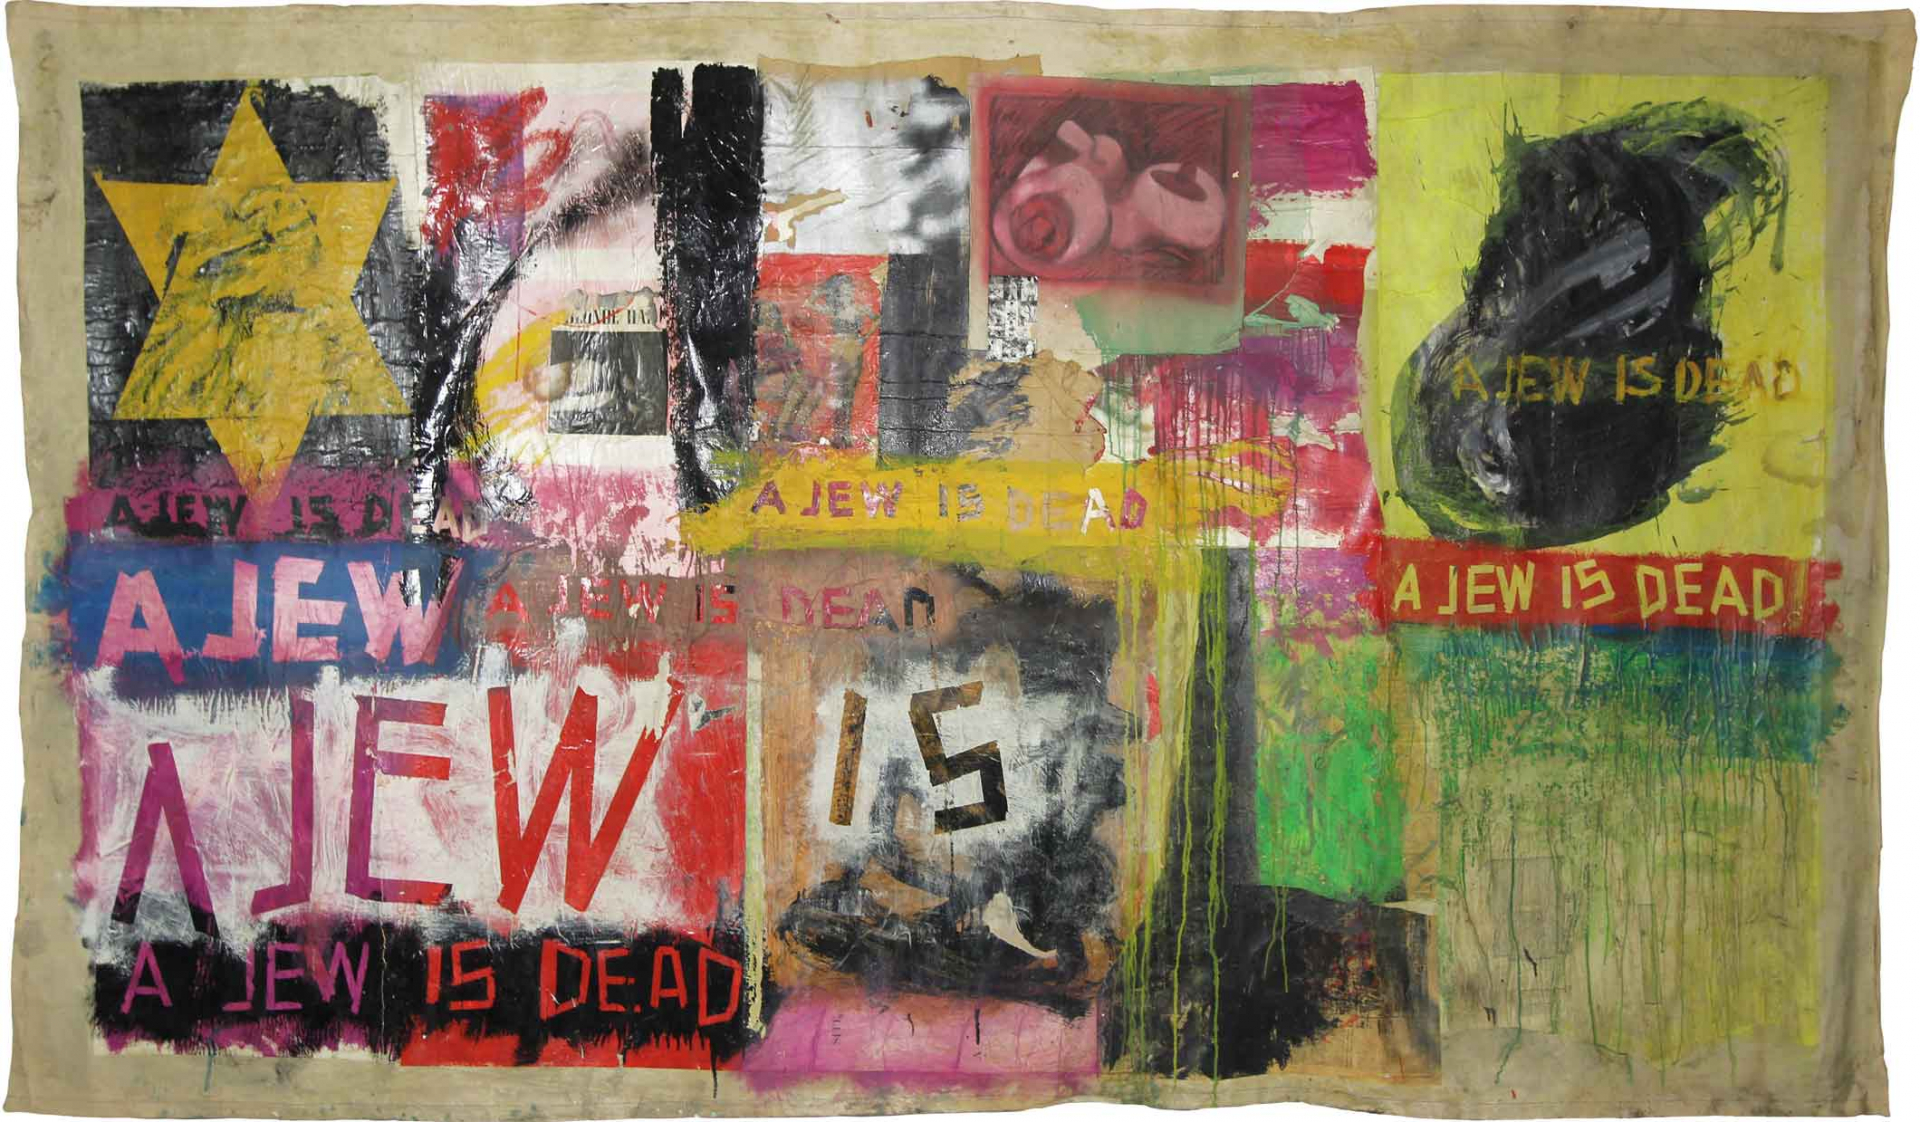 Colorful painting collage with the star of david and the text